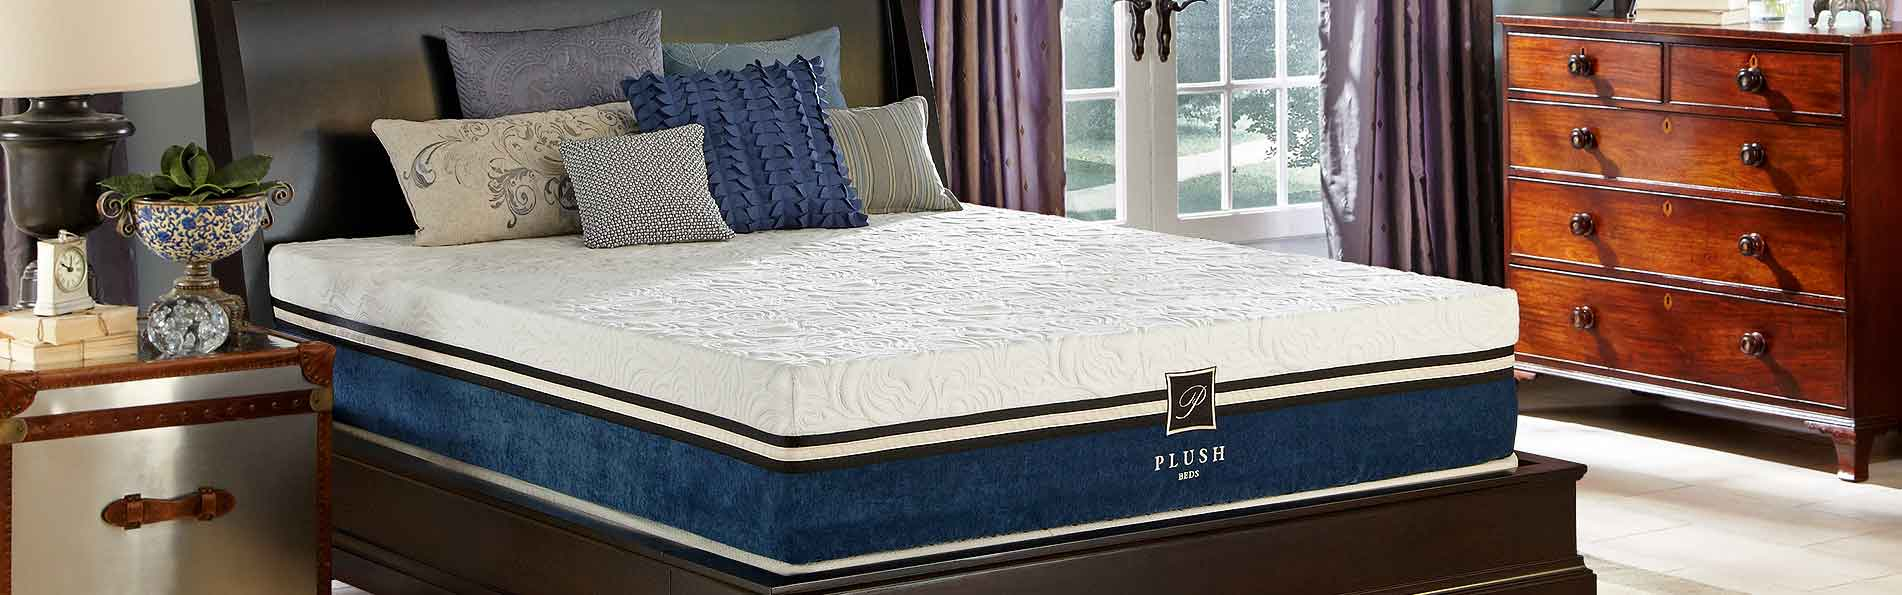 Plushbeds 12 Inch Cool Bliss Luxury Memory Foam Mattress